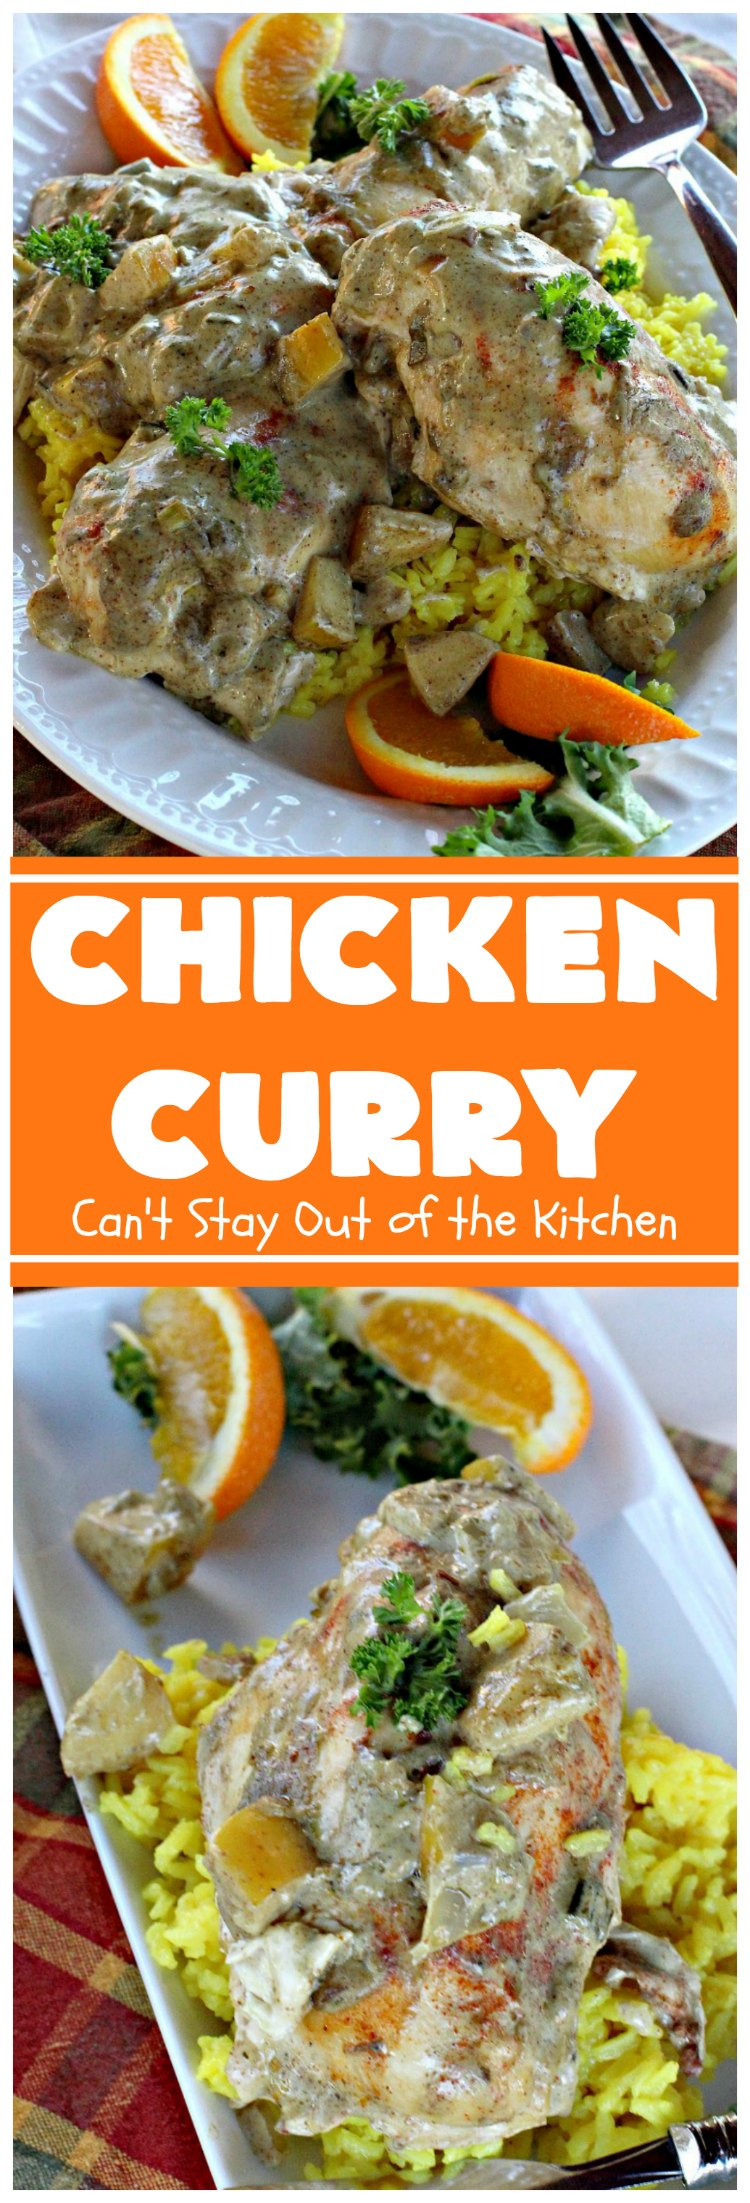 Chicken Curry | Can't Stay Out of the Kitchen